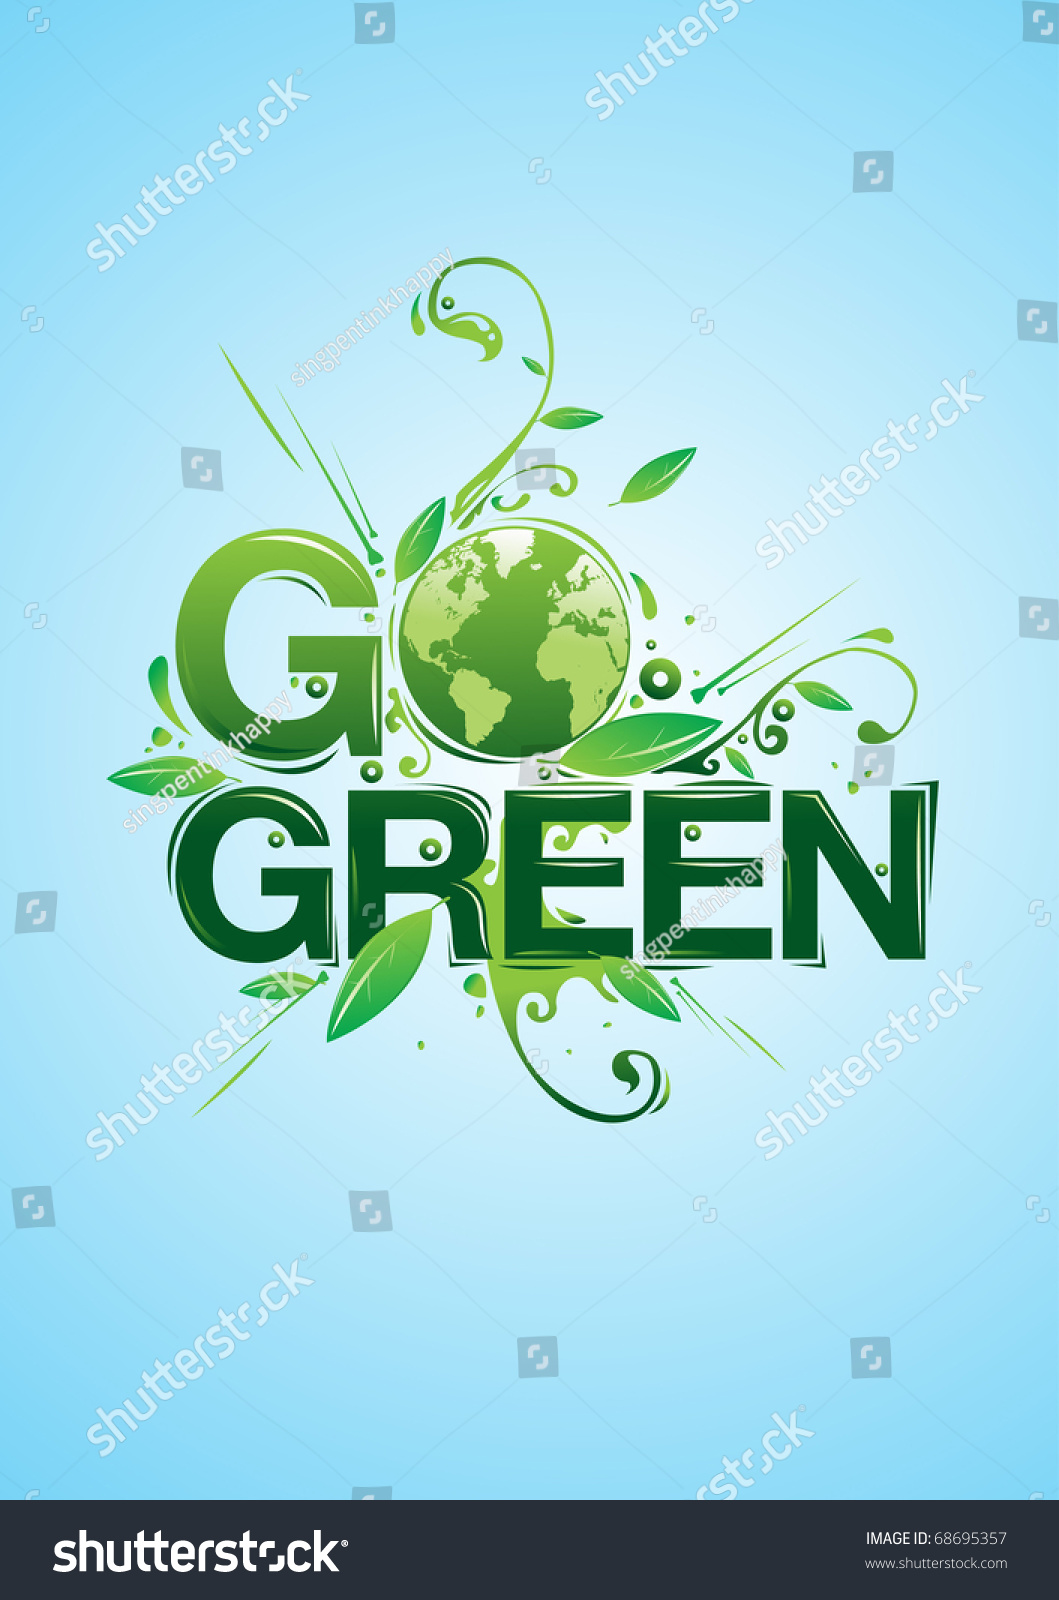 Go Green Campaign Poster Stock Vector 68695357 - Shutterstock